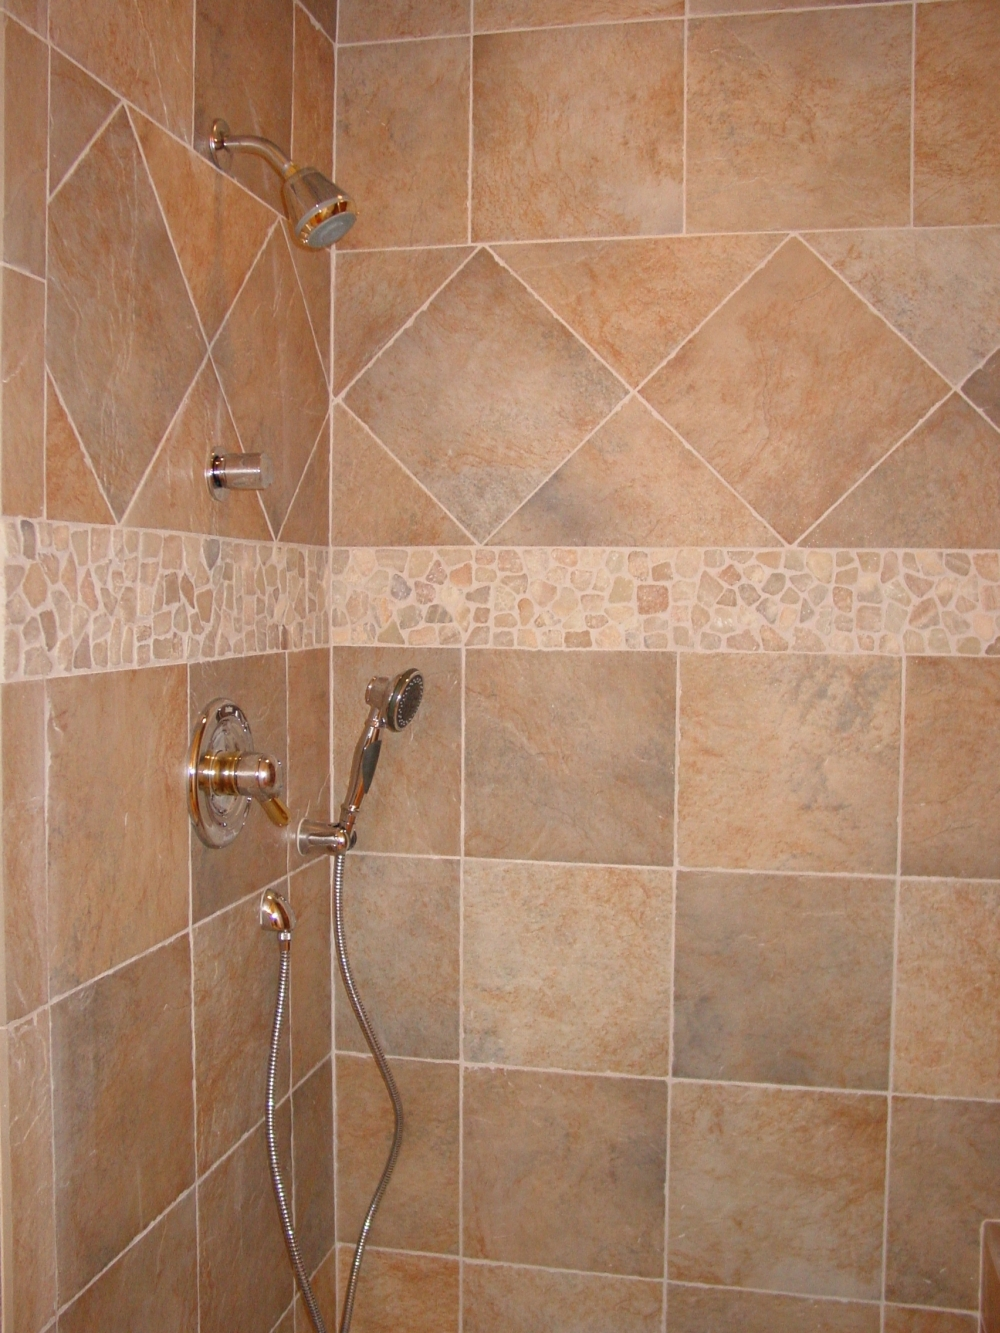 Pebble shower floors for tiled showers how to install small rocks tile your world Tile shower stalls